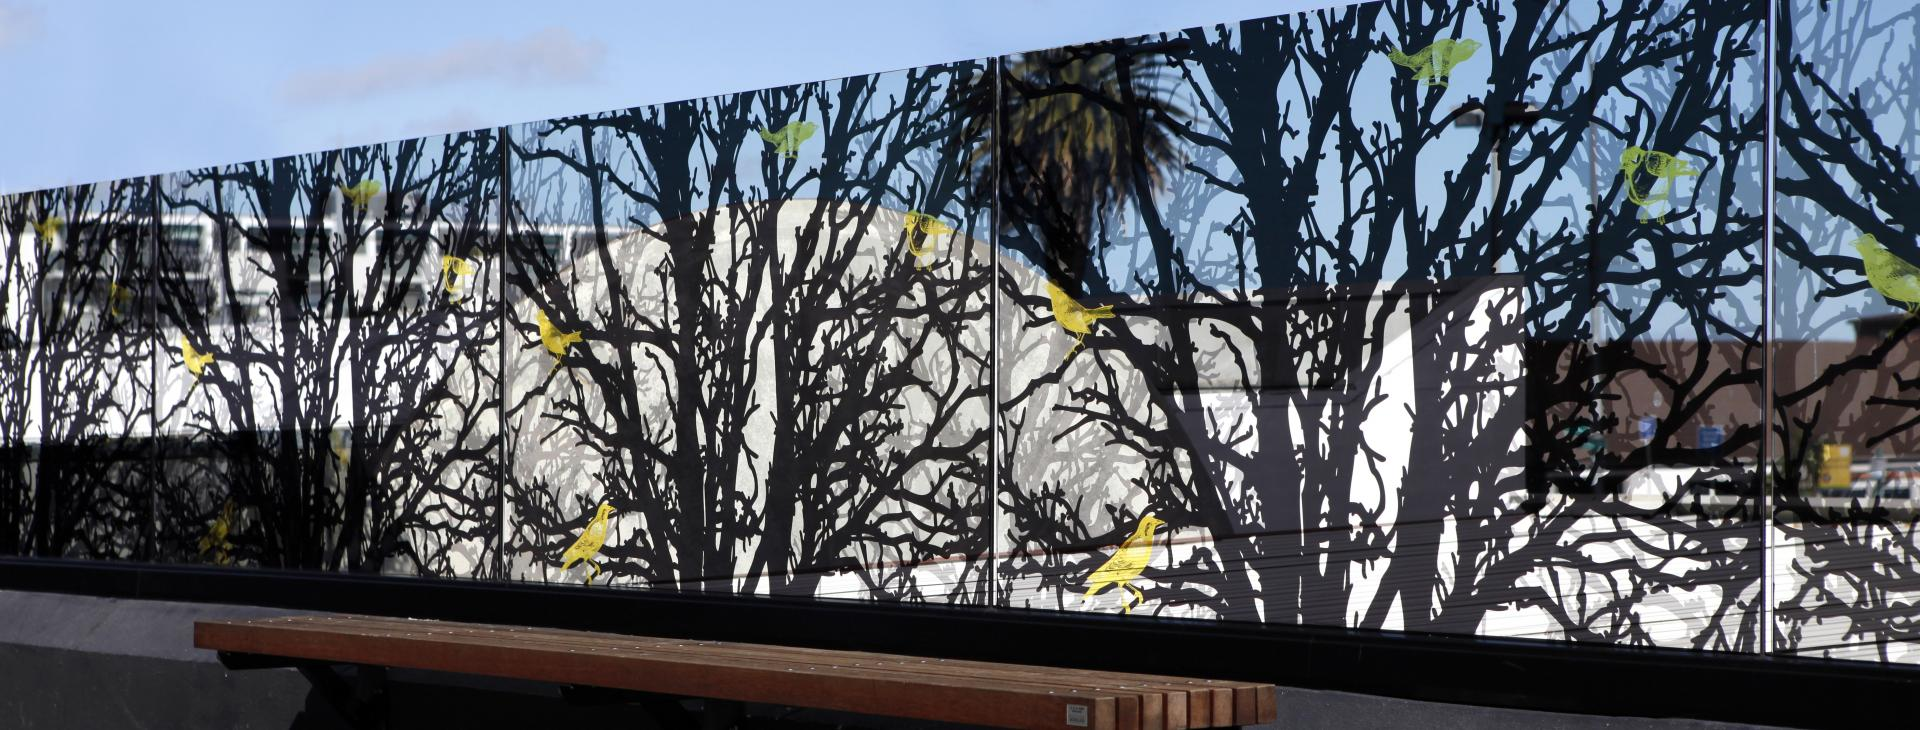 South Africa Printed glass